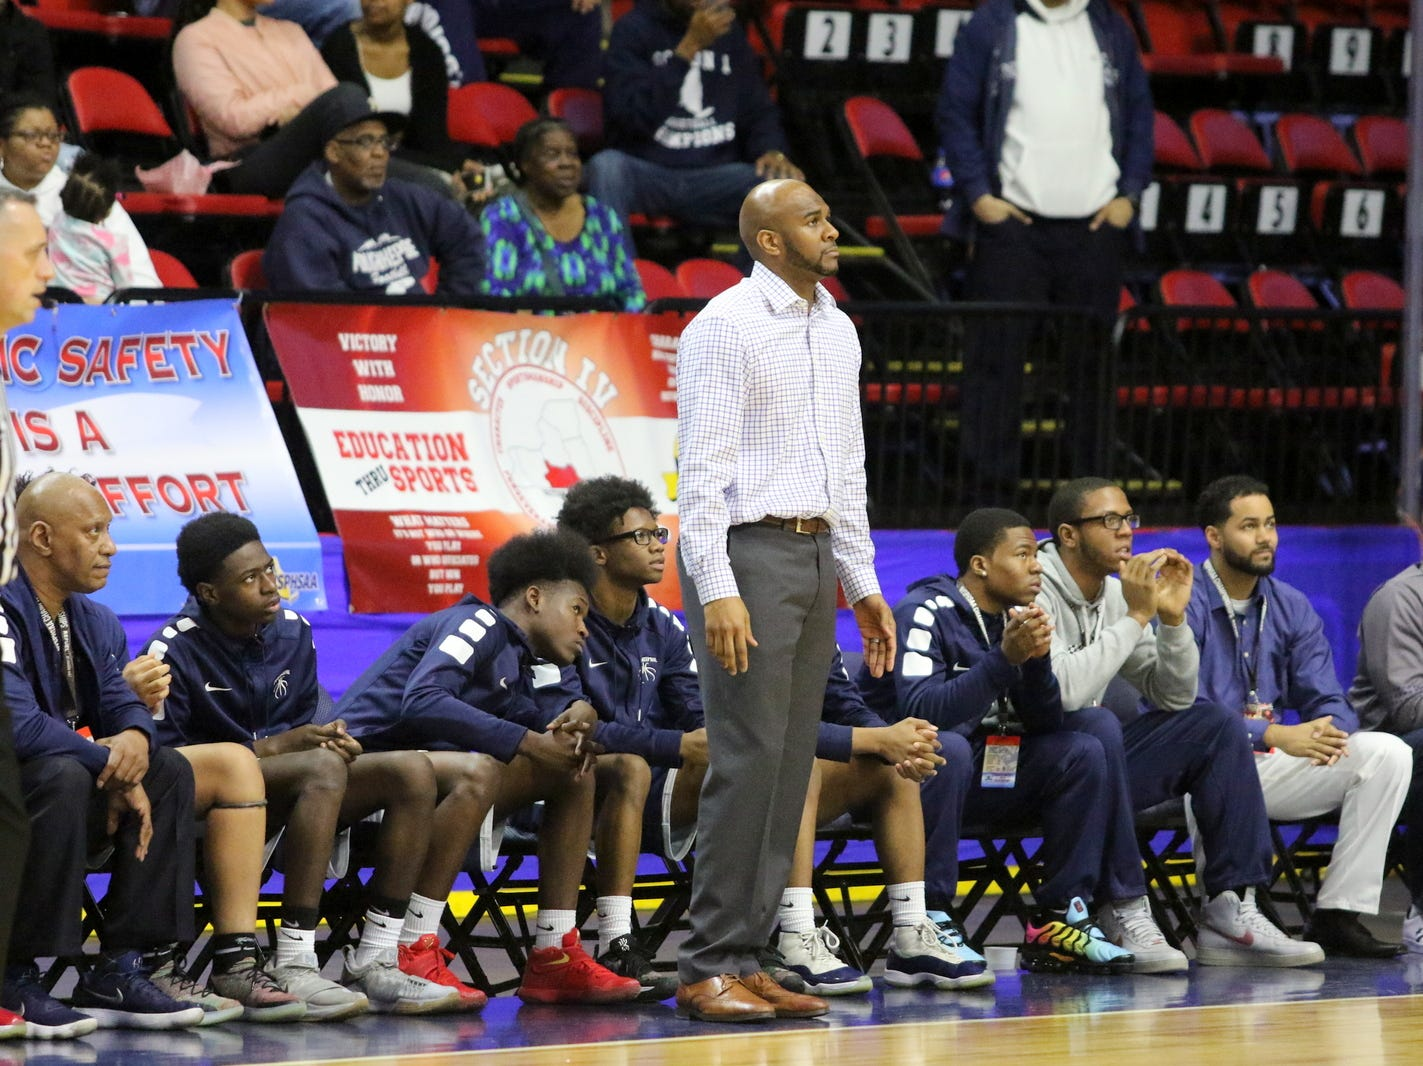 Poughkeepsie head coach Cody Moffett on the sideline against Manhasset during a Class A boys basketball state semifinal March 15, 2019 at Floyd L. Maines Veterans Memorial Arena in Binghamton.